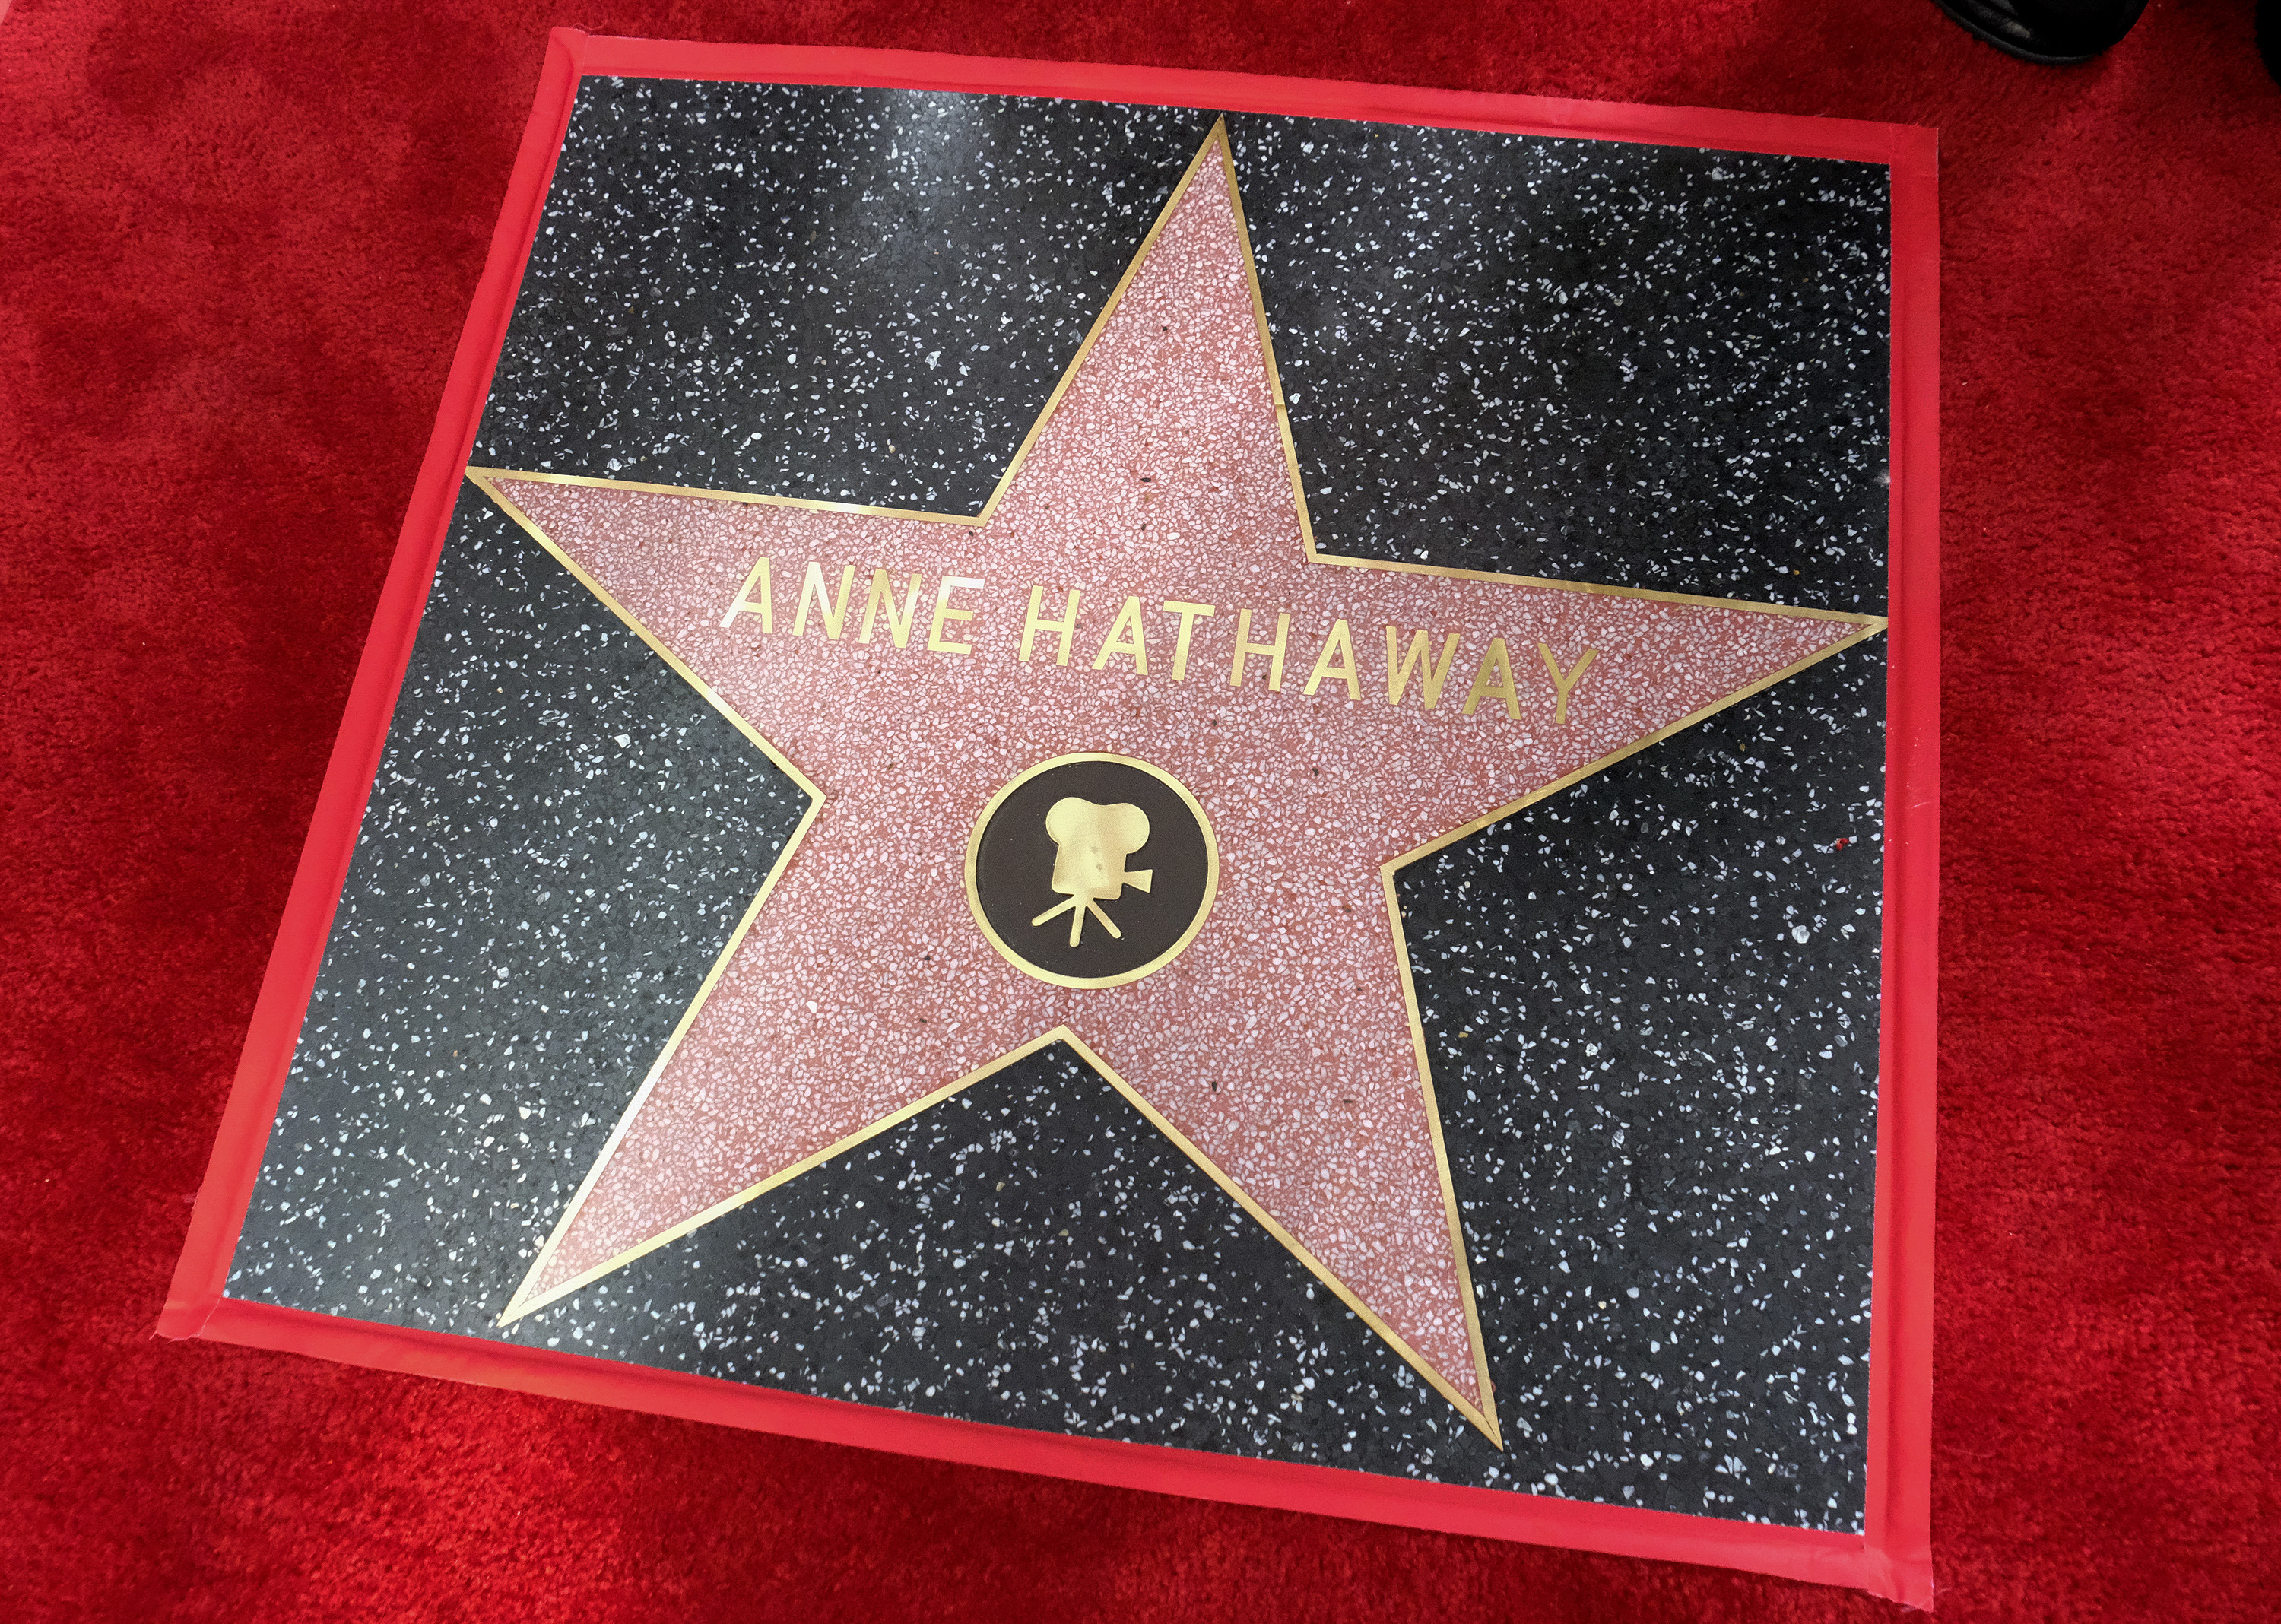 Hathaway has been honoured with a star on the Hollywood Walk of Fame. Credit: PA